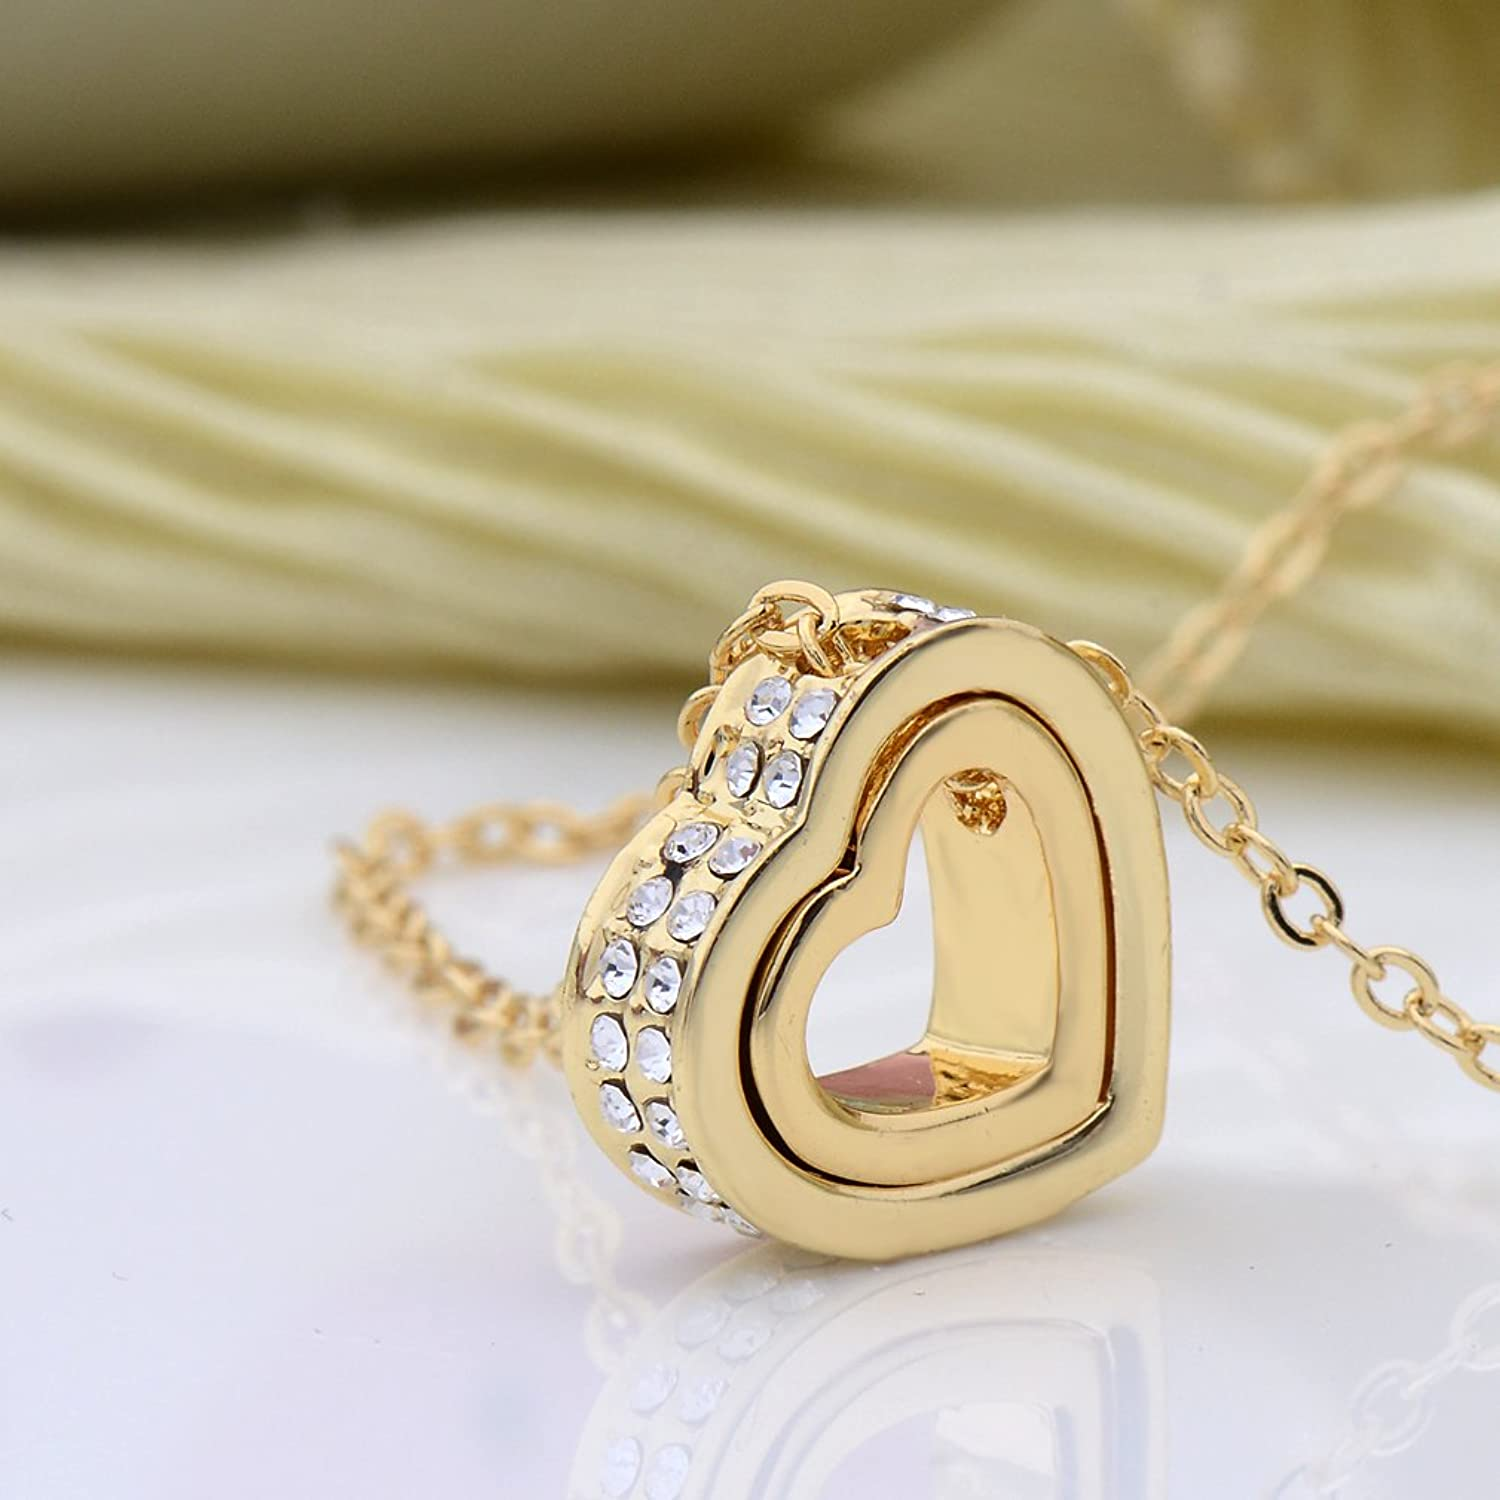 Amazon xingzou jewelry for women 18k gold plated double heart amazon xingzou jewelry for women 18k gold plated double heart necklace pendant with swarovski elements crystal jewelry mozeypictures Gallery